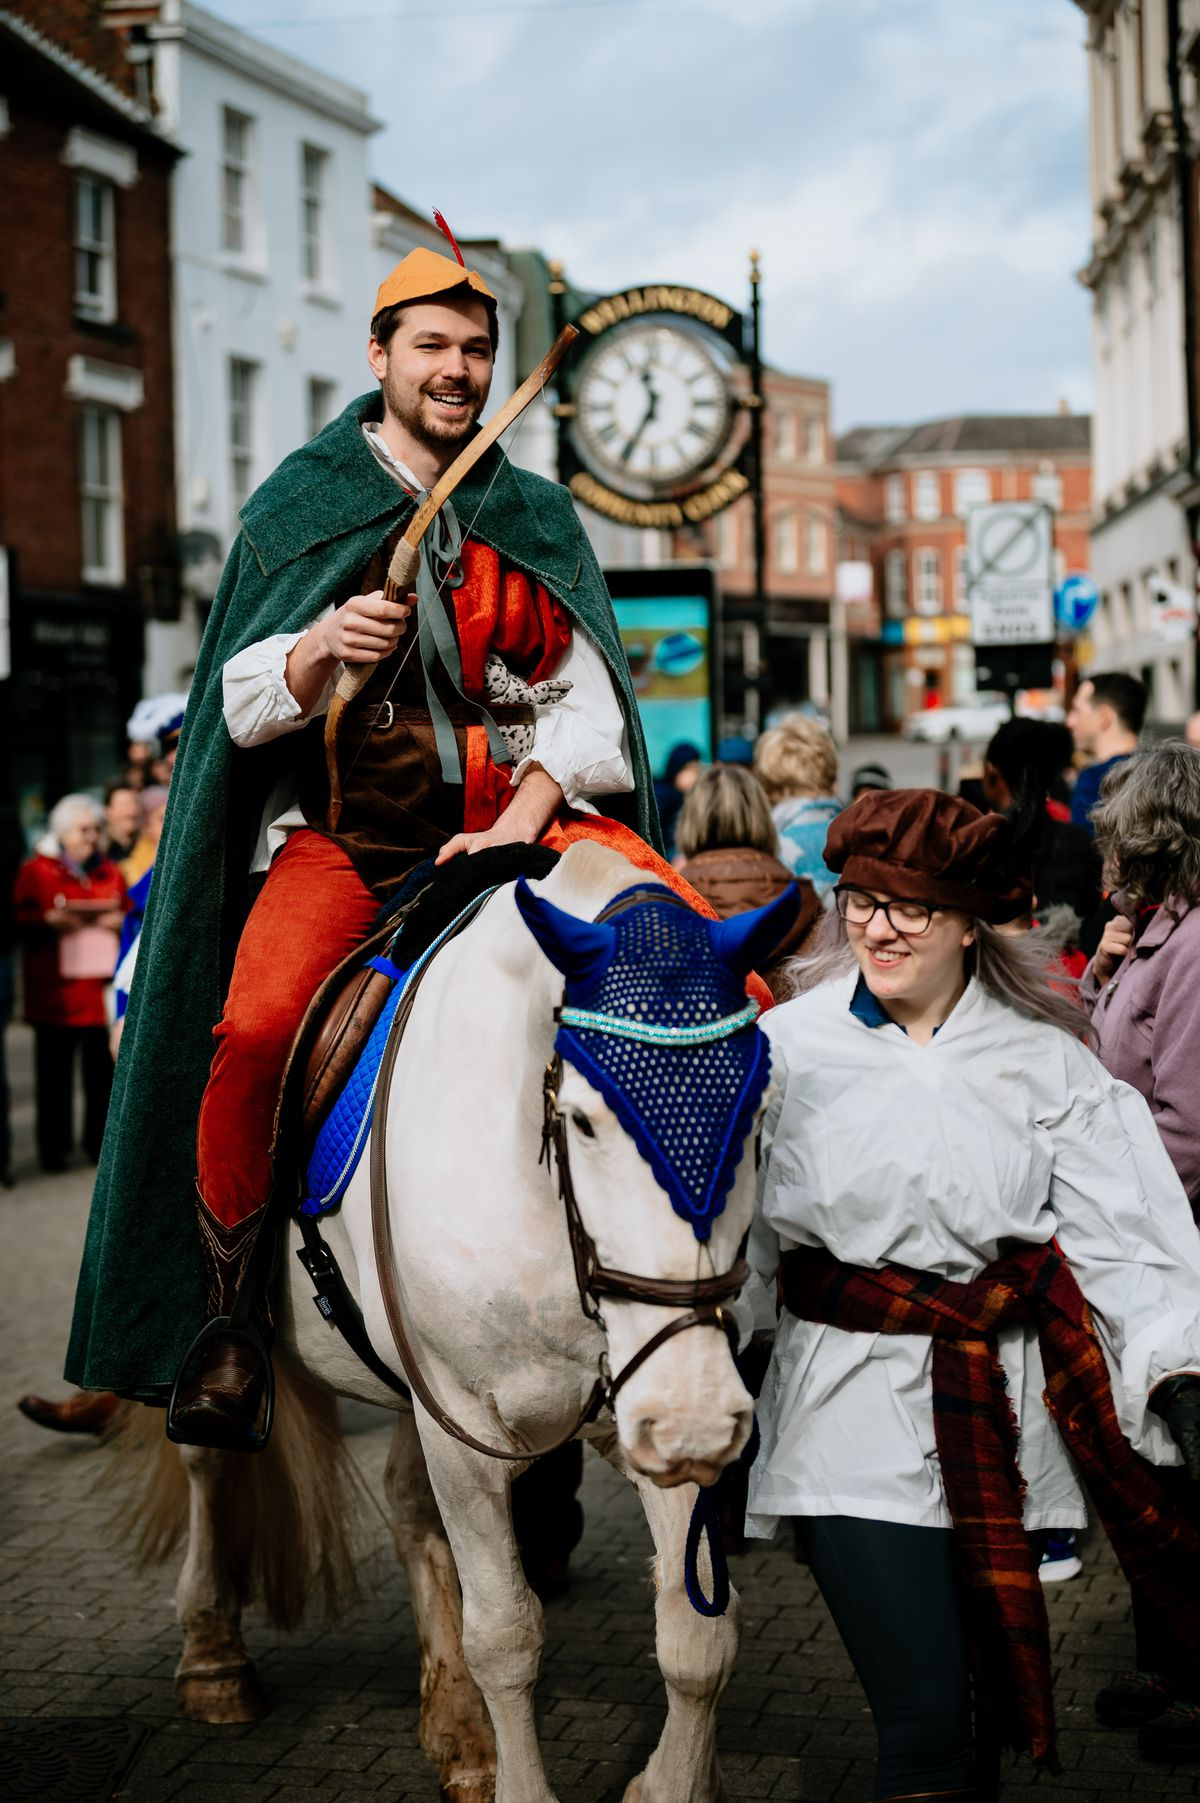 The King's herald arrives on horseback to deliver the charter